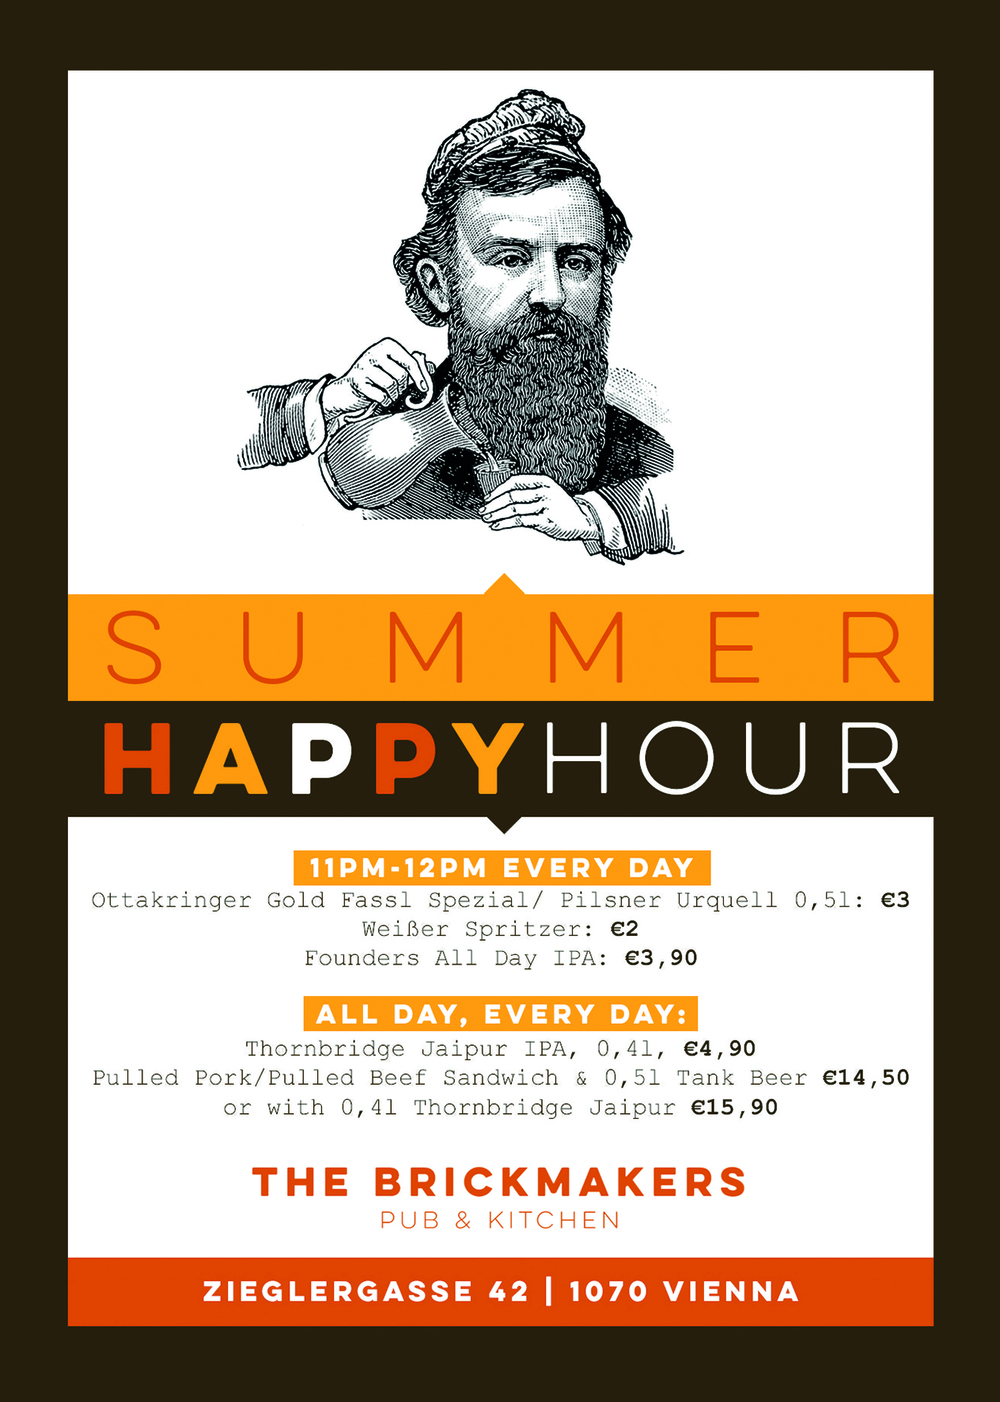 happyhour_flyer2.jpg